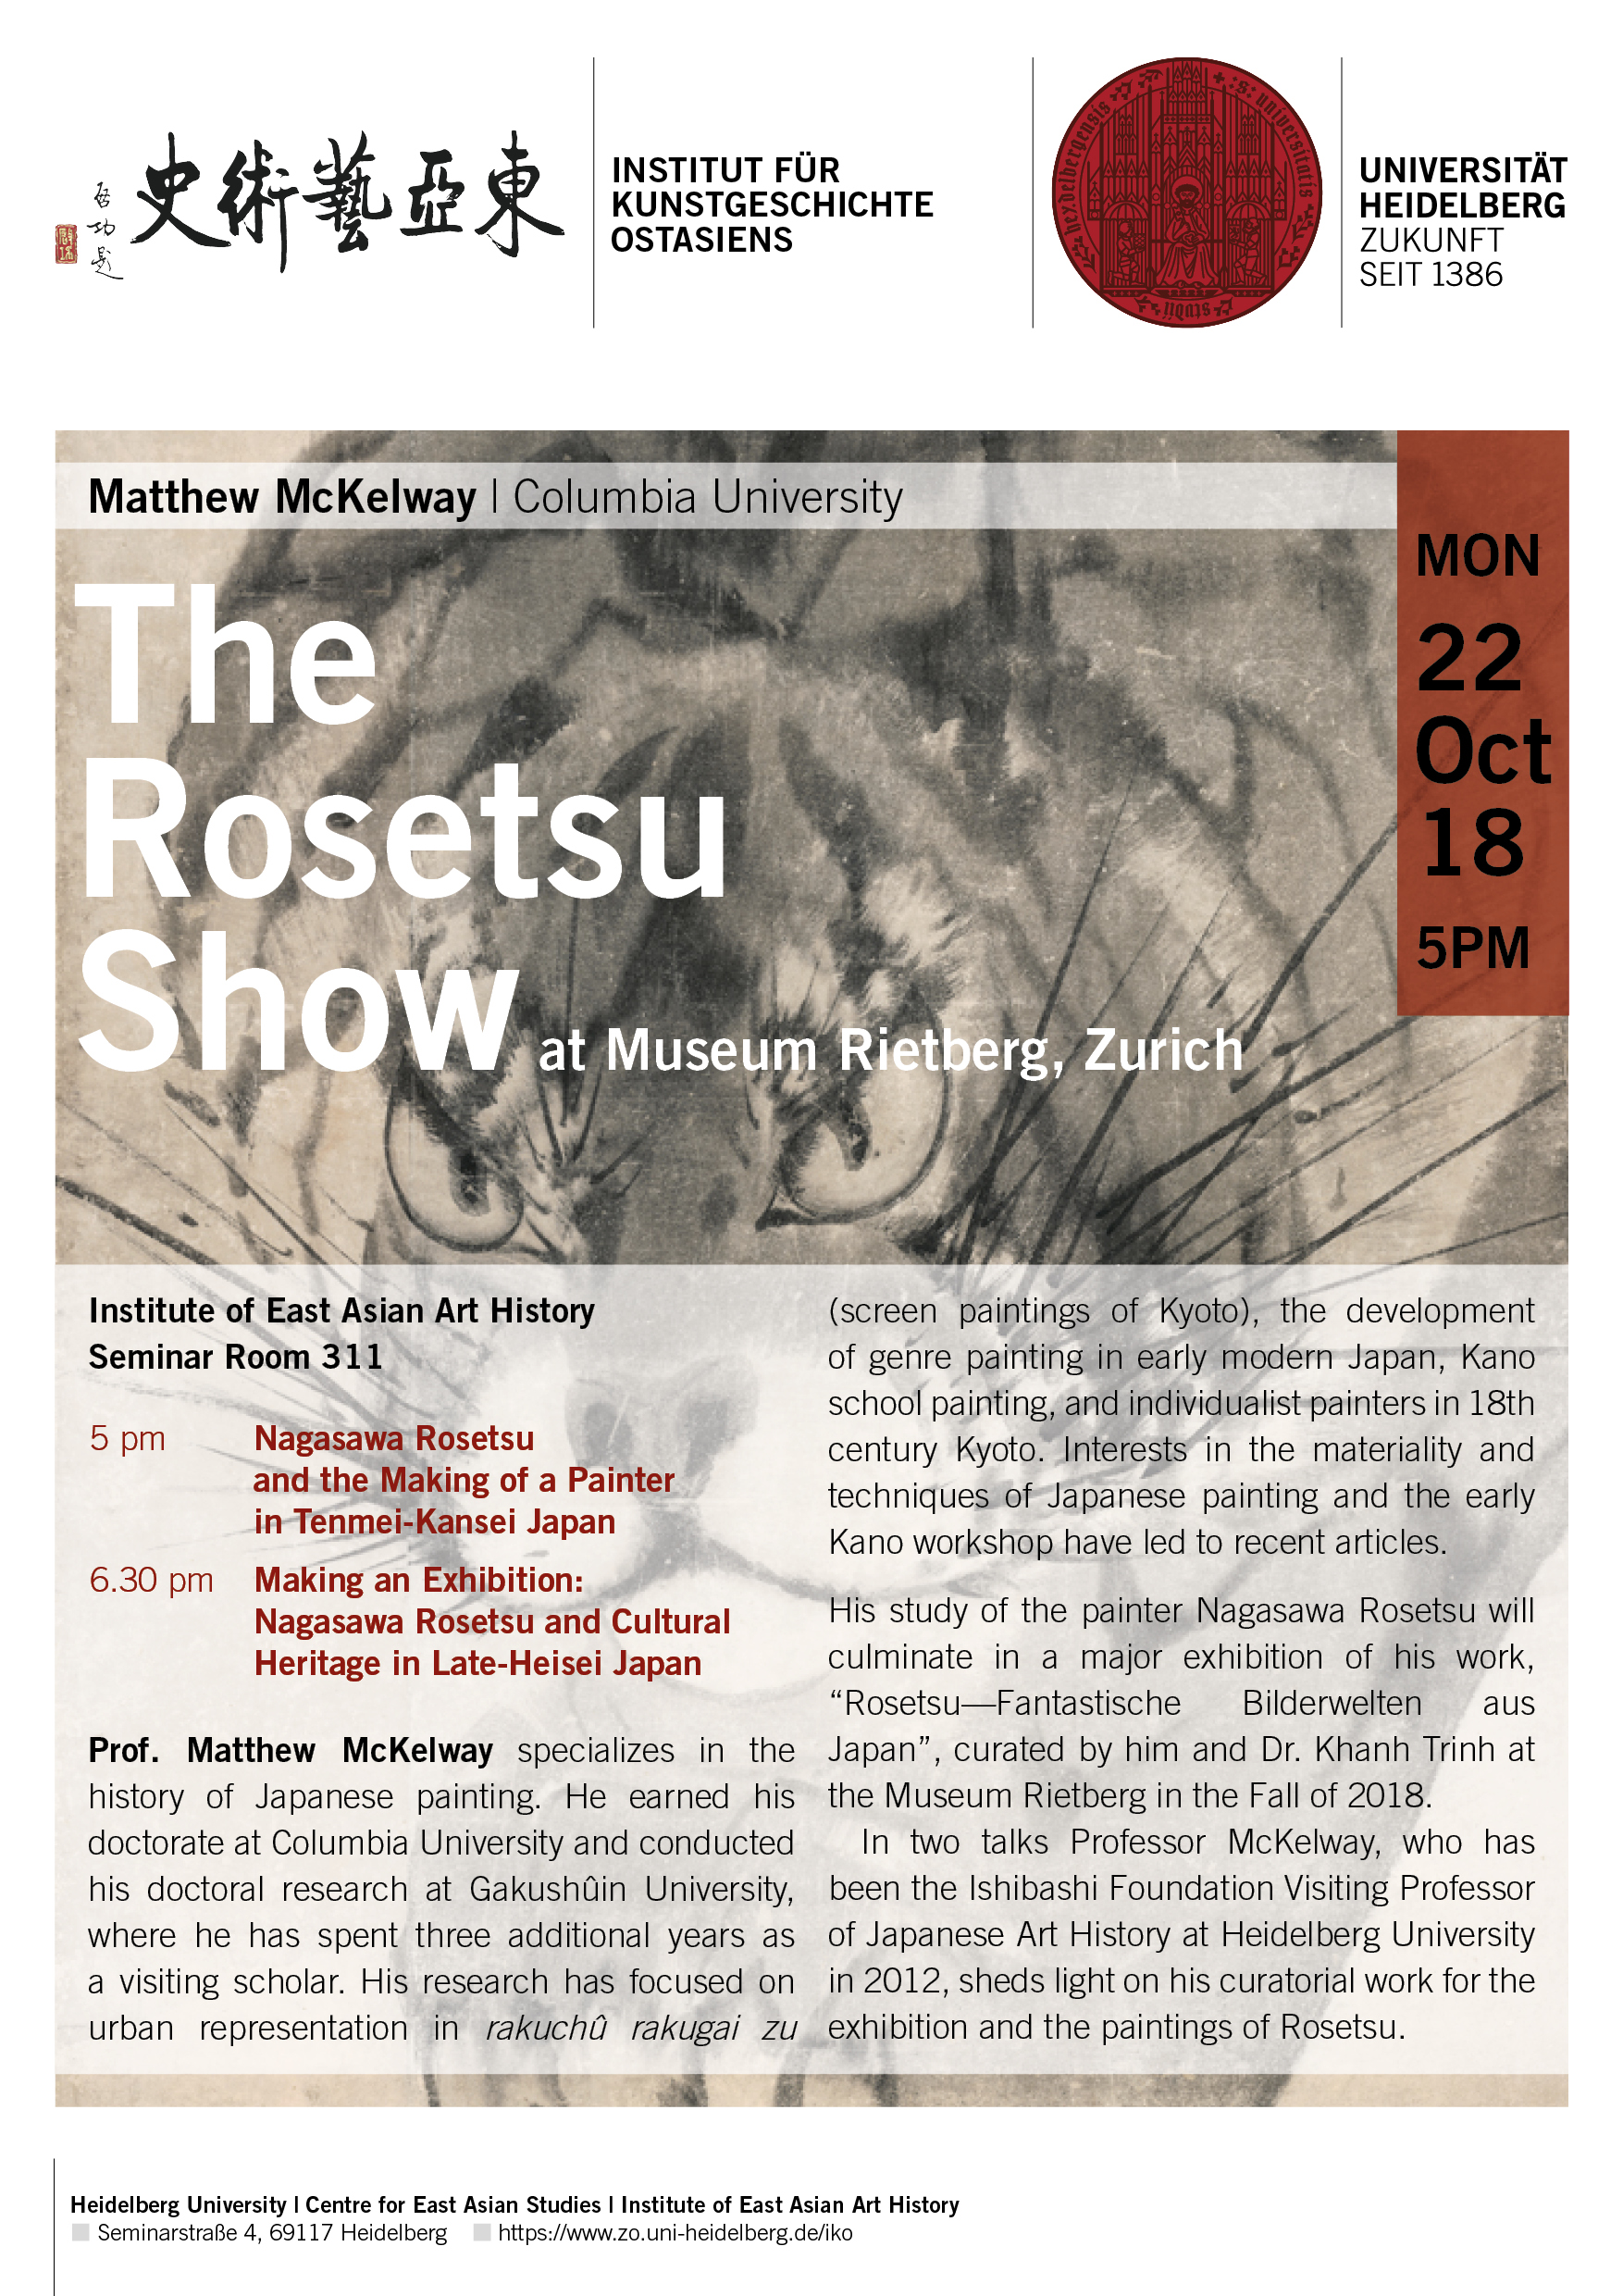 22 Oct, 2018 | Matthew McKelway: The Rosetsu Show at Museum Rietberg, Zurich